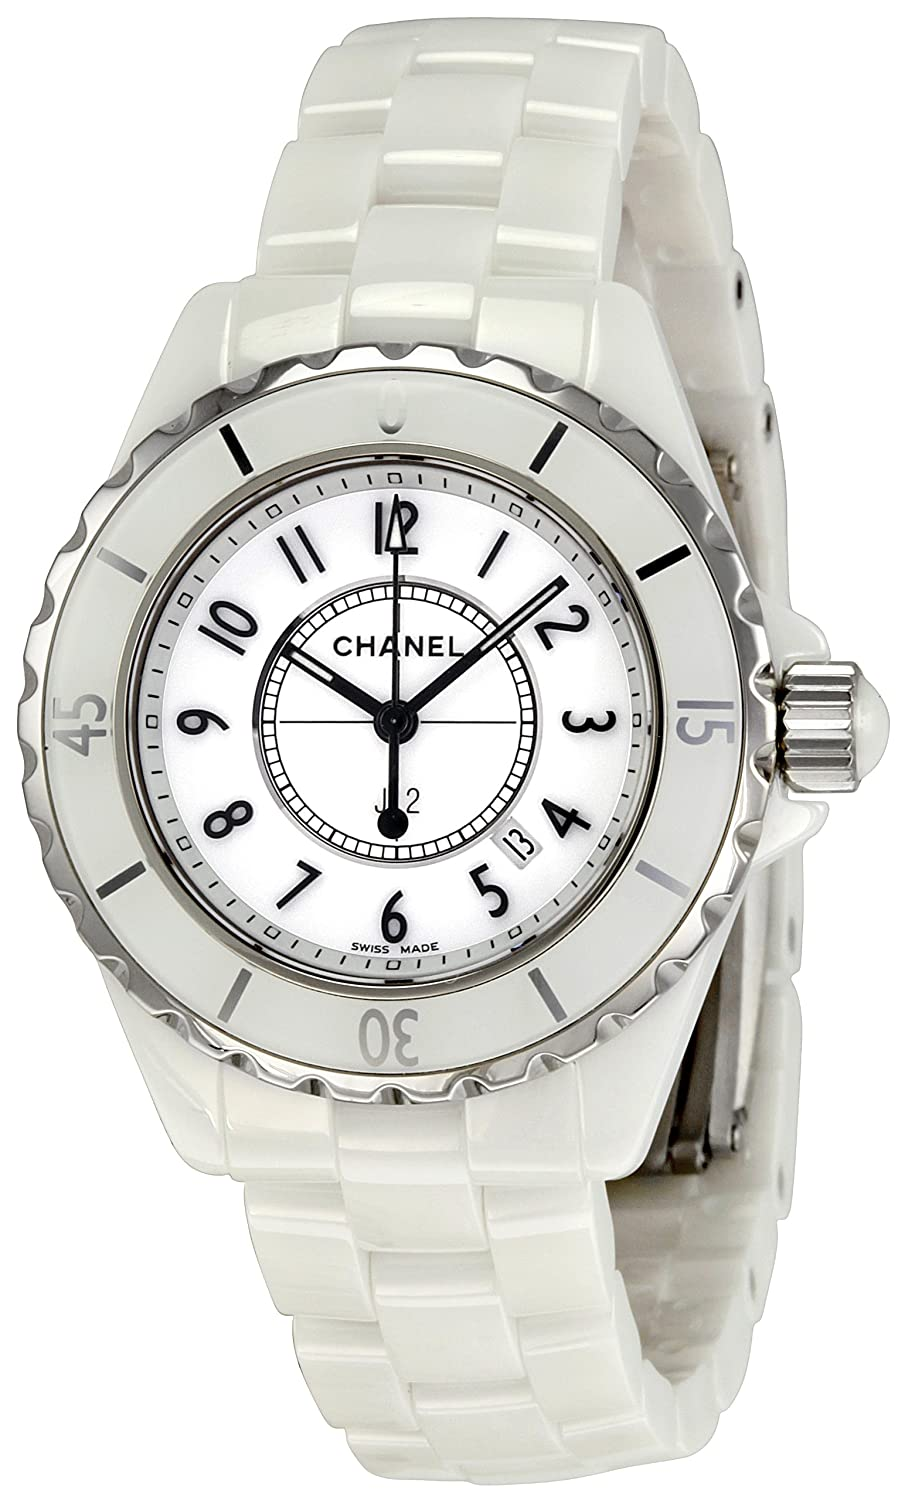 online watch white image diamond buy chronograph chanel brereton jewellers ceramic ladies watches